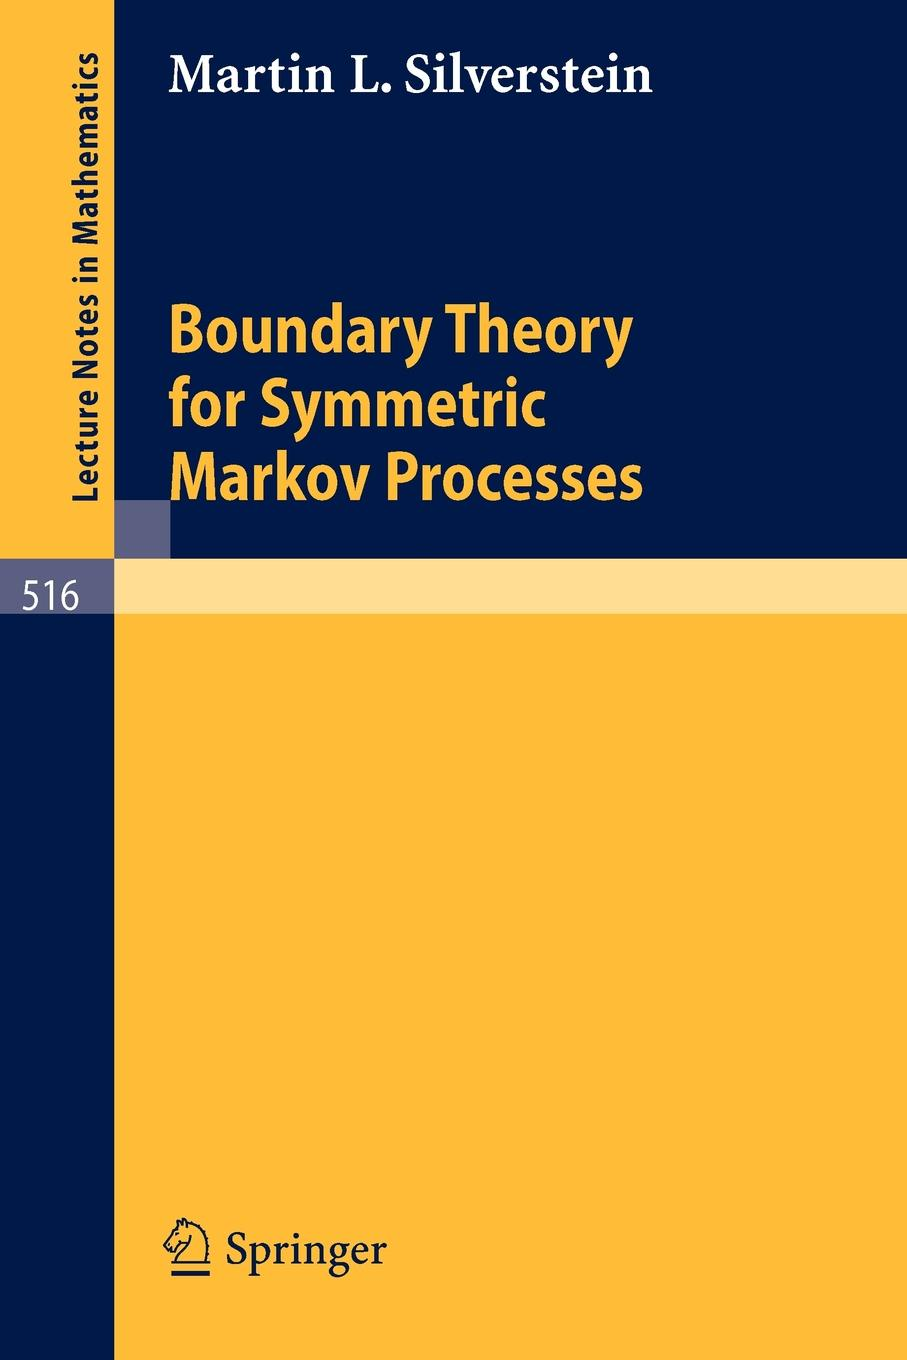 M.L. Silverstein Boundary Theory for Symmetric Markov Processes m l silverstein boundary theory for symmetric markov processes